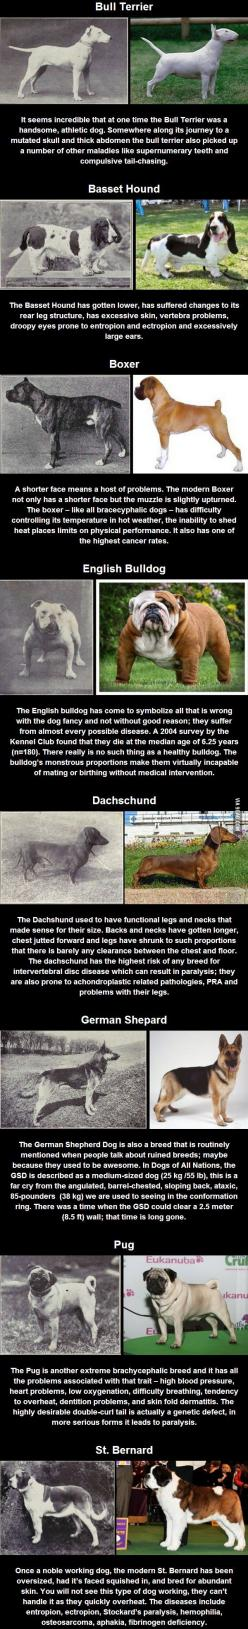 100 years of selective breeding...thank you to all you heartless breeders who really don't love dogs (or cats for that matter): Dogs, Poor Dog, Selective Breeding, Mutt Dog, Dog Breeds, Animal, 100 Years